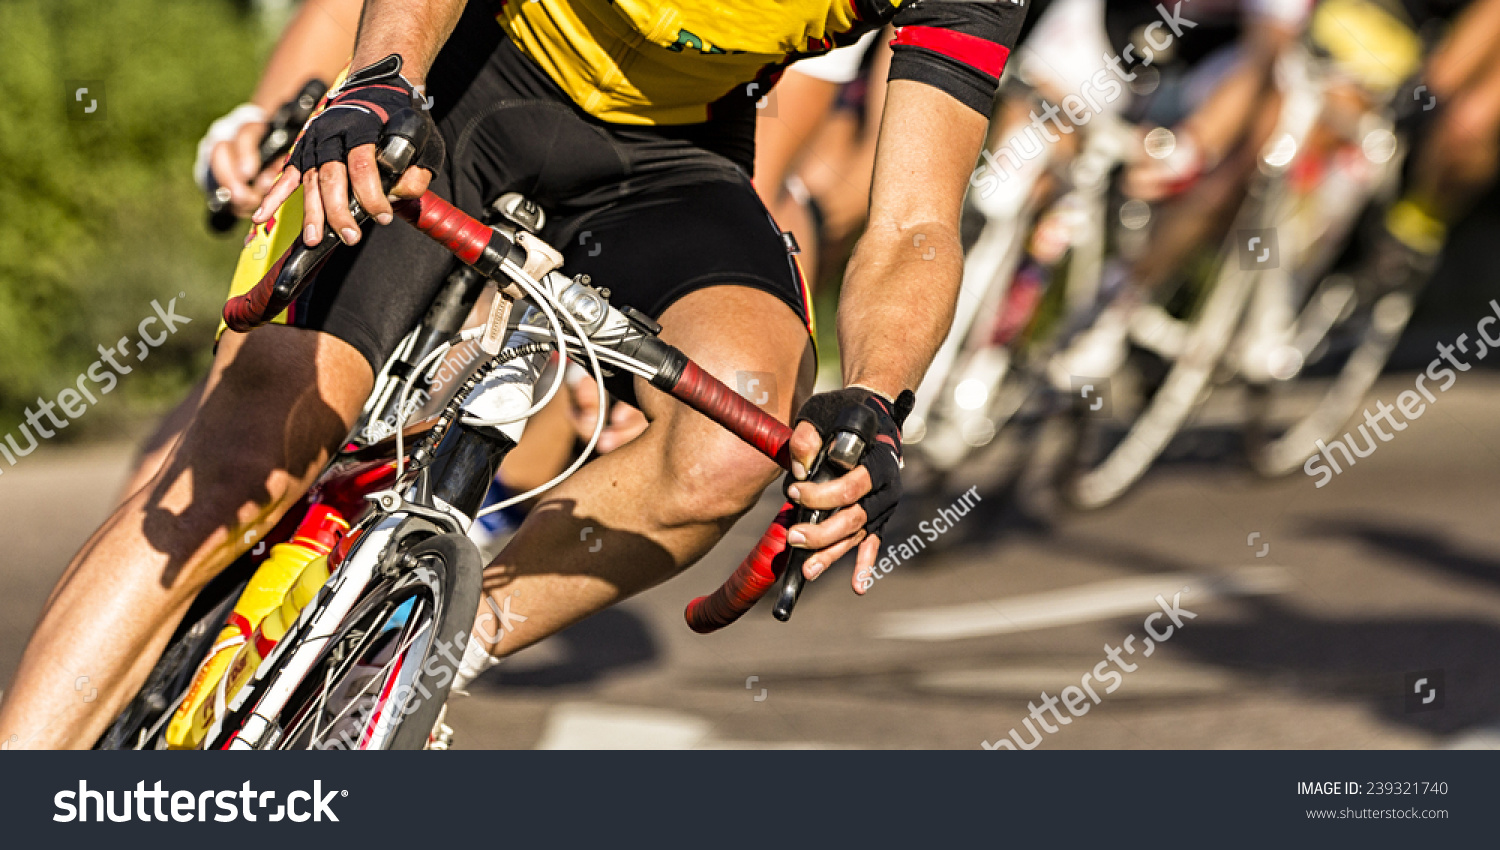 Cycling Competition Stock Photo 239321740